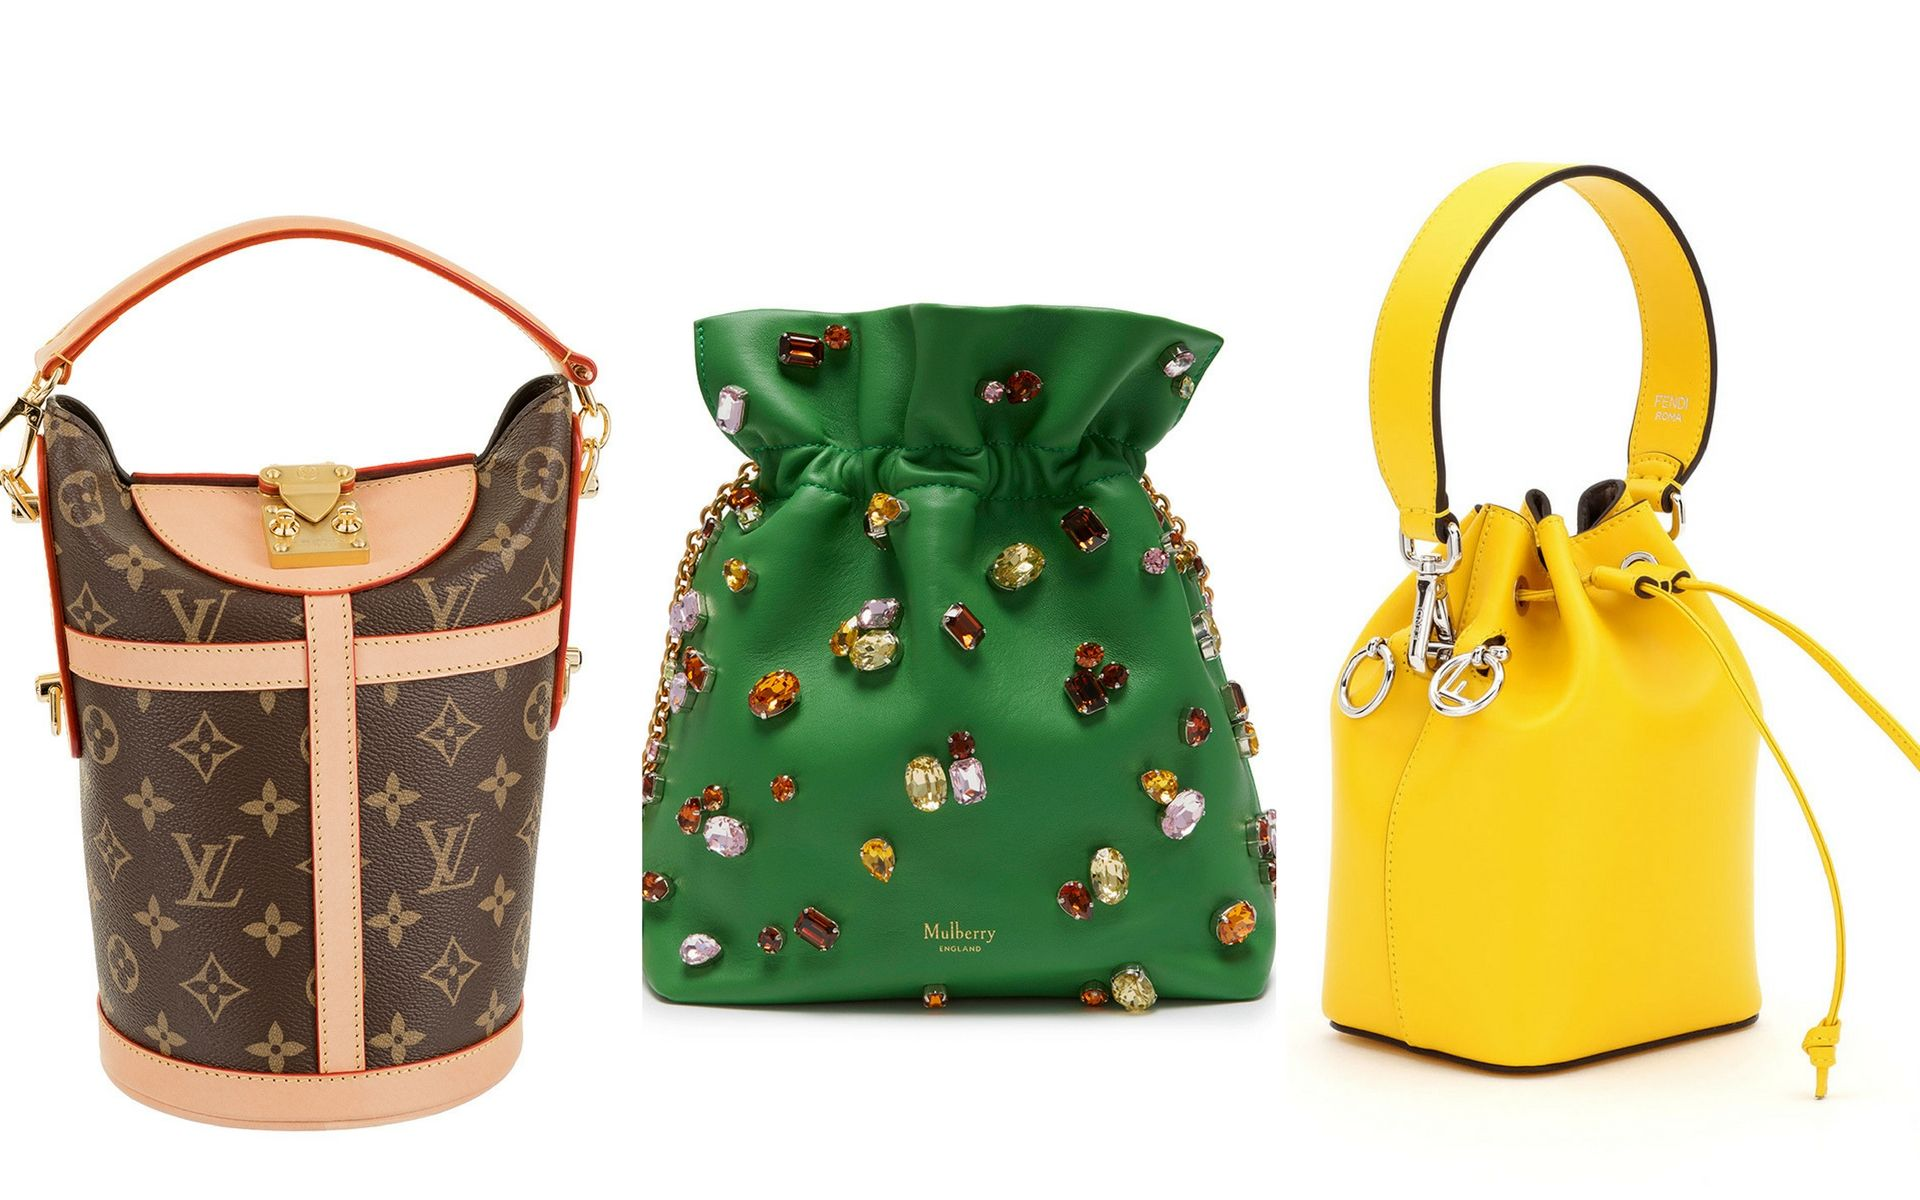 c661c0f7e6b3 9 Bucket Bags That Are Essentially The  Money Bags  Of This Season ...